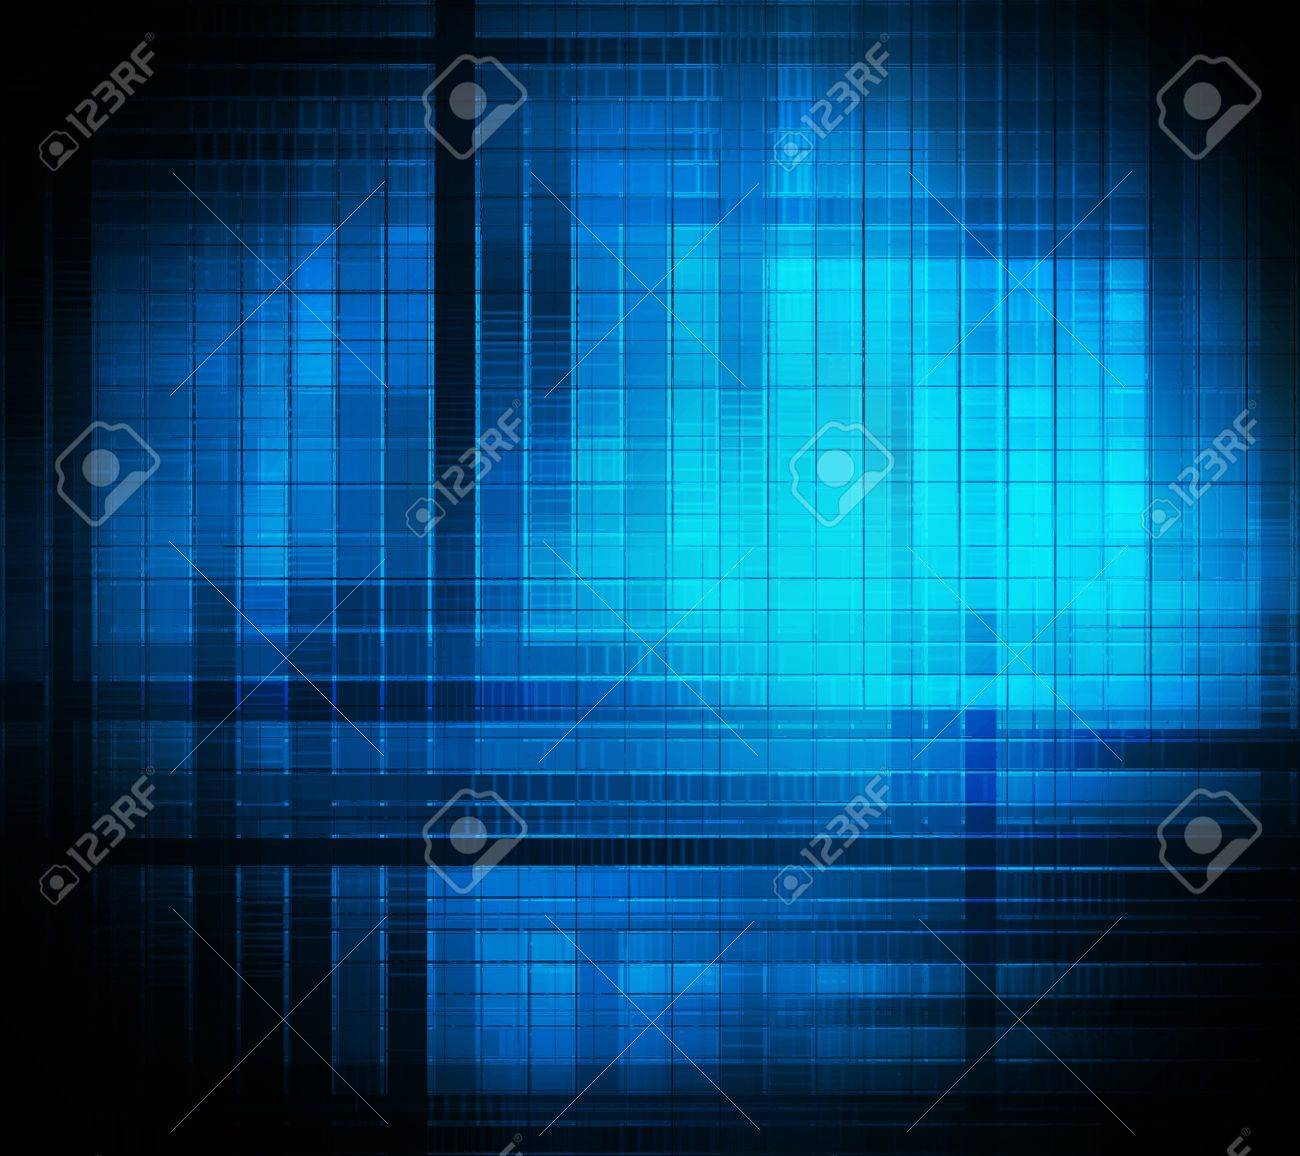 square background abstract of techno style Stock Photo - 12776687